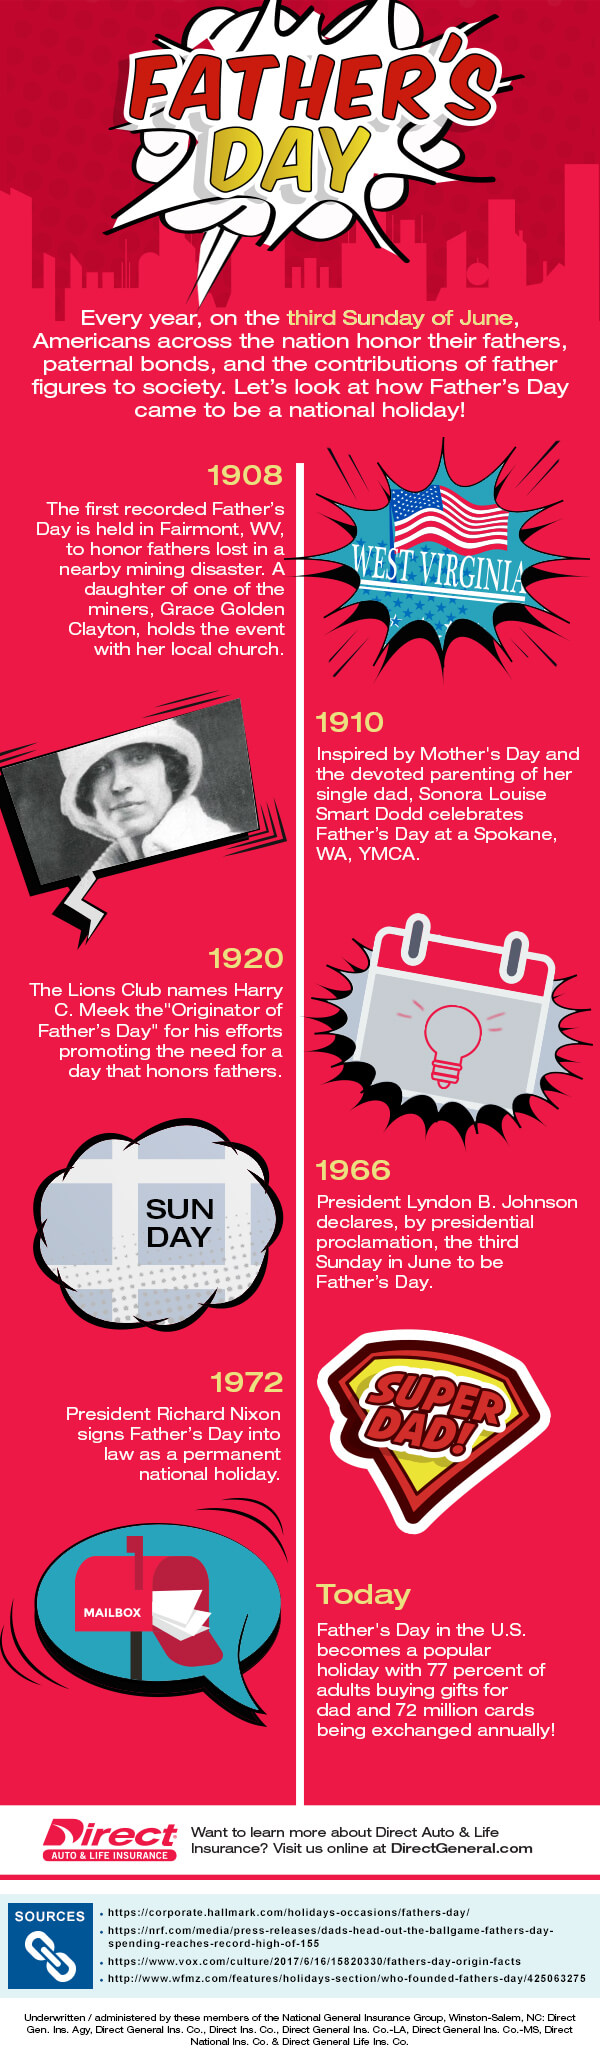 Father's Day historical timeline from 1908 to today in infographic format.